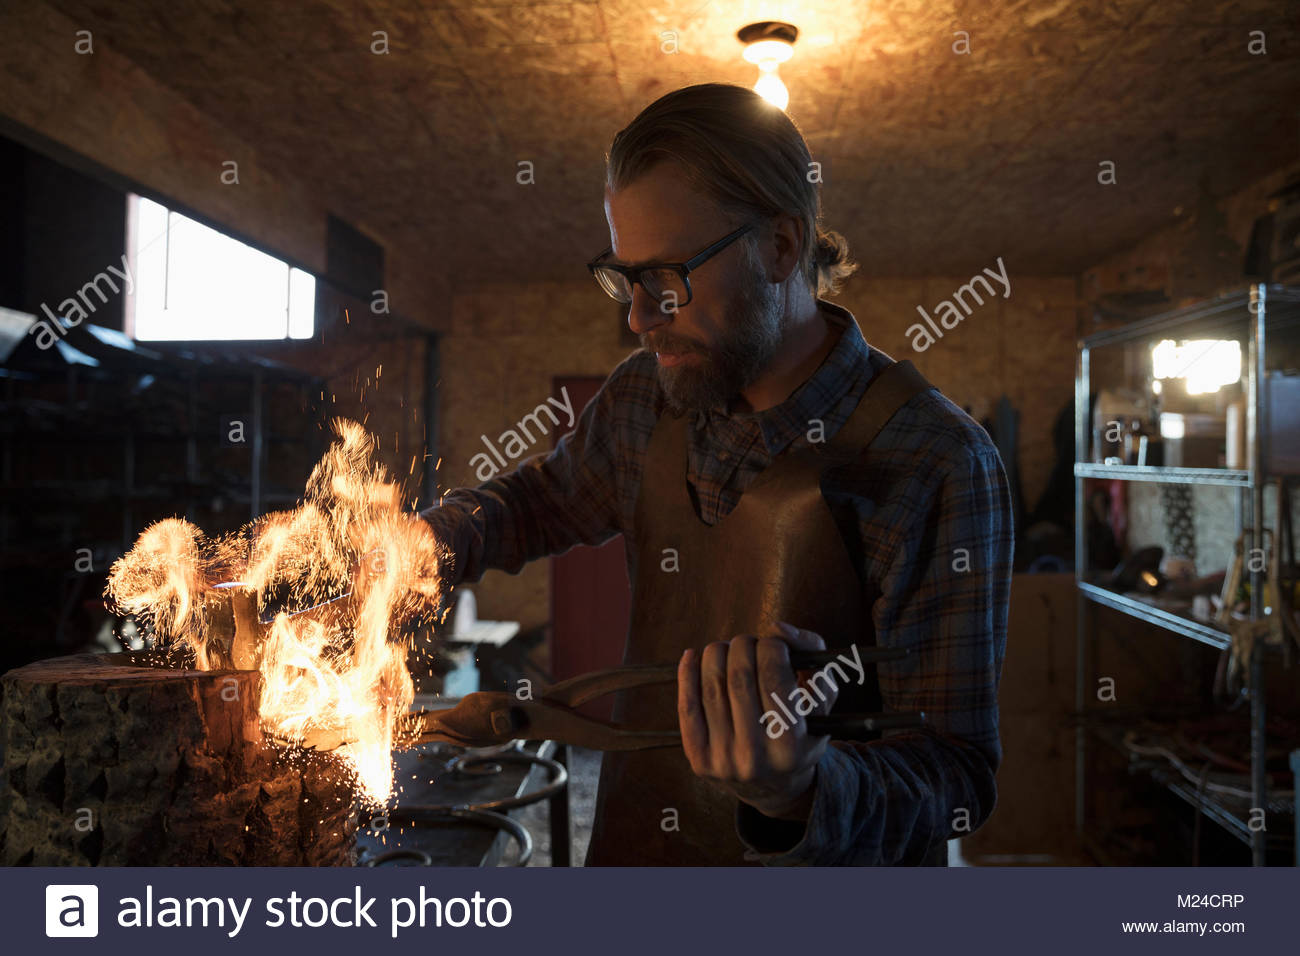 Focused male blacksmith heating metal at flame in blacksmith shop - Stock Image